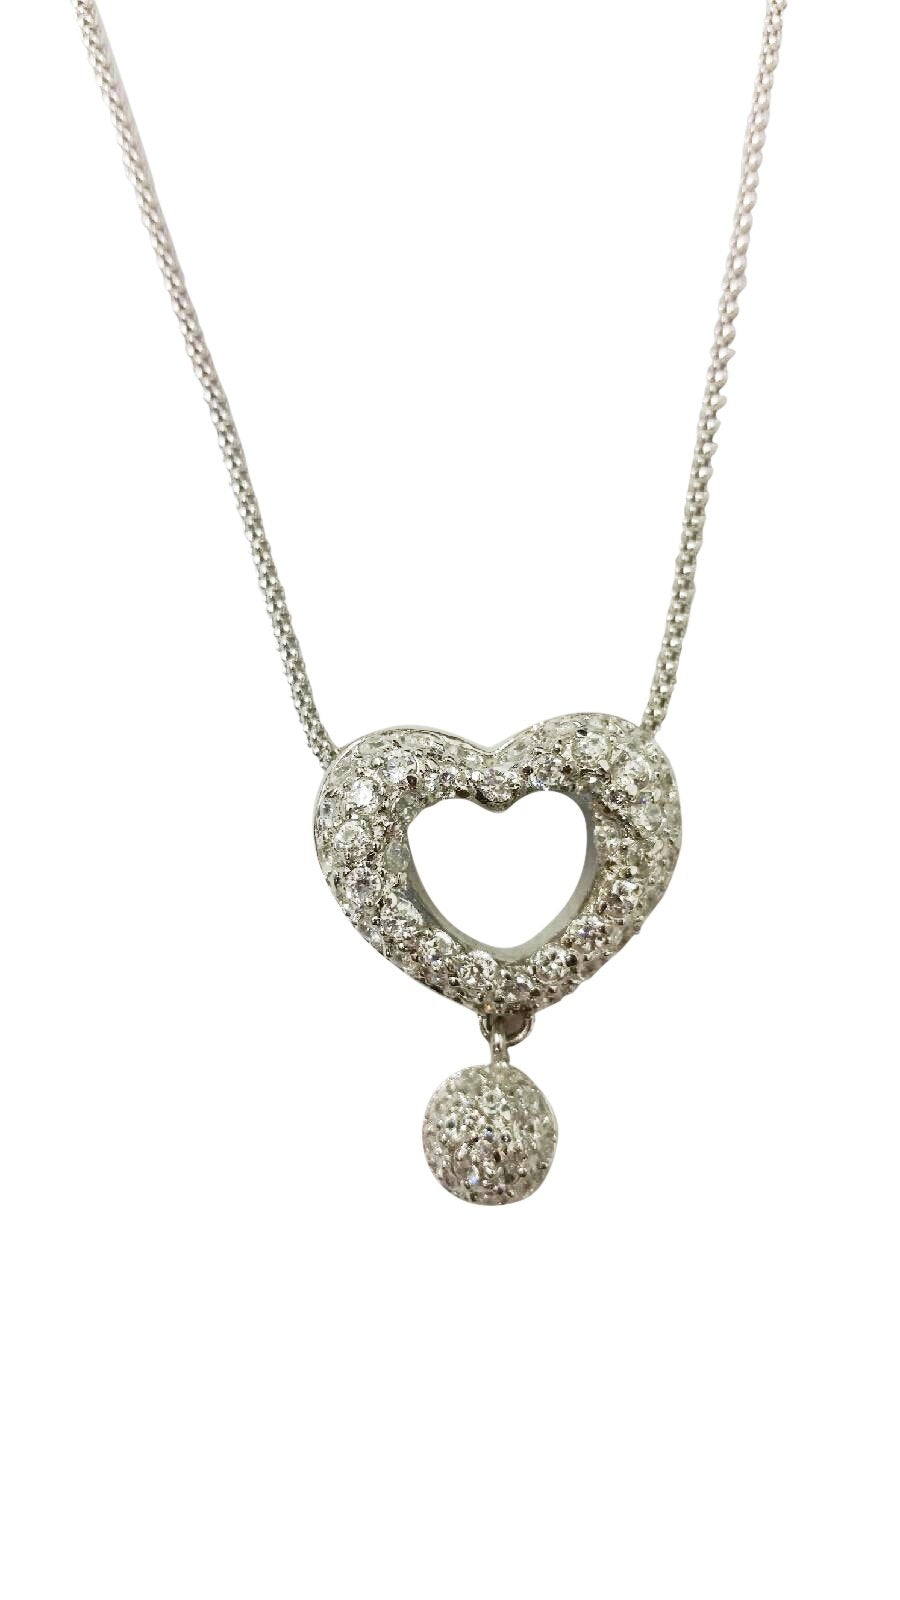 Sterling Silver Open Heart Micro-pave Pendant featuring a dangling pave fireball